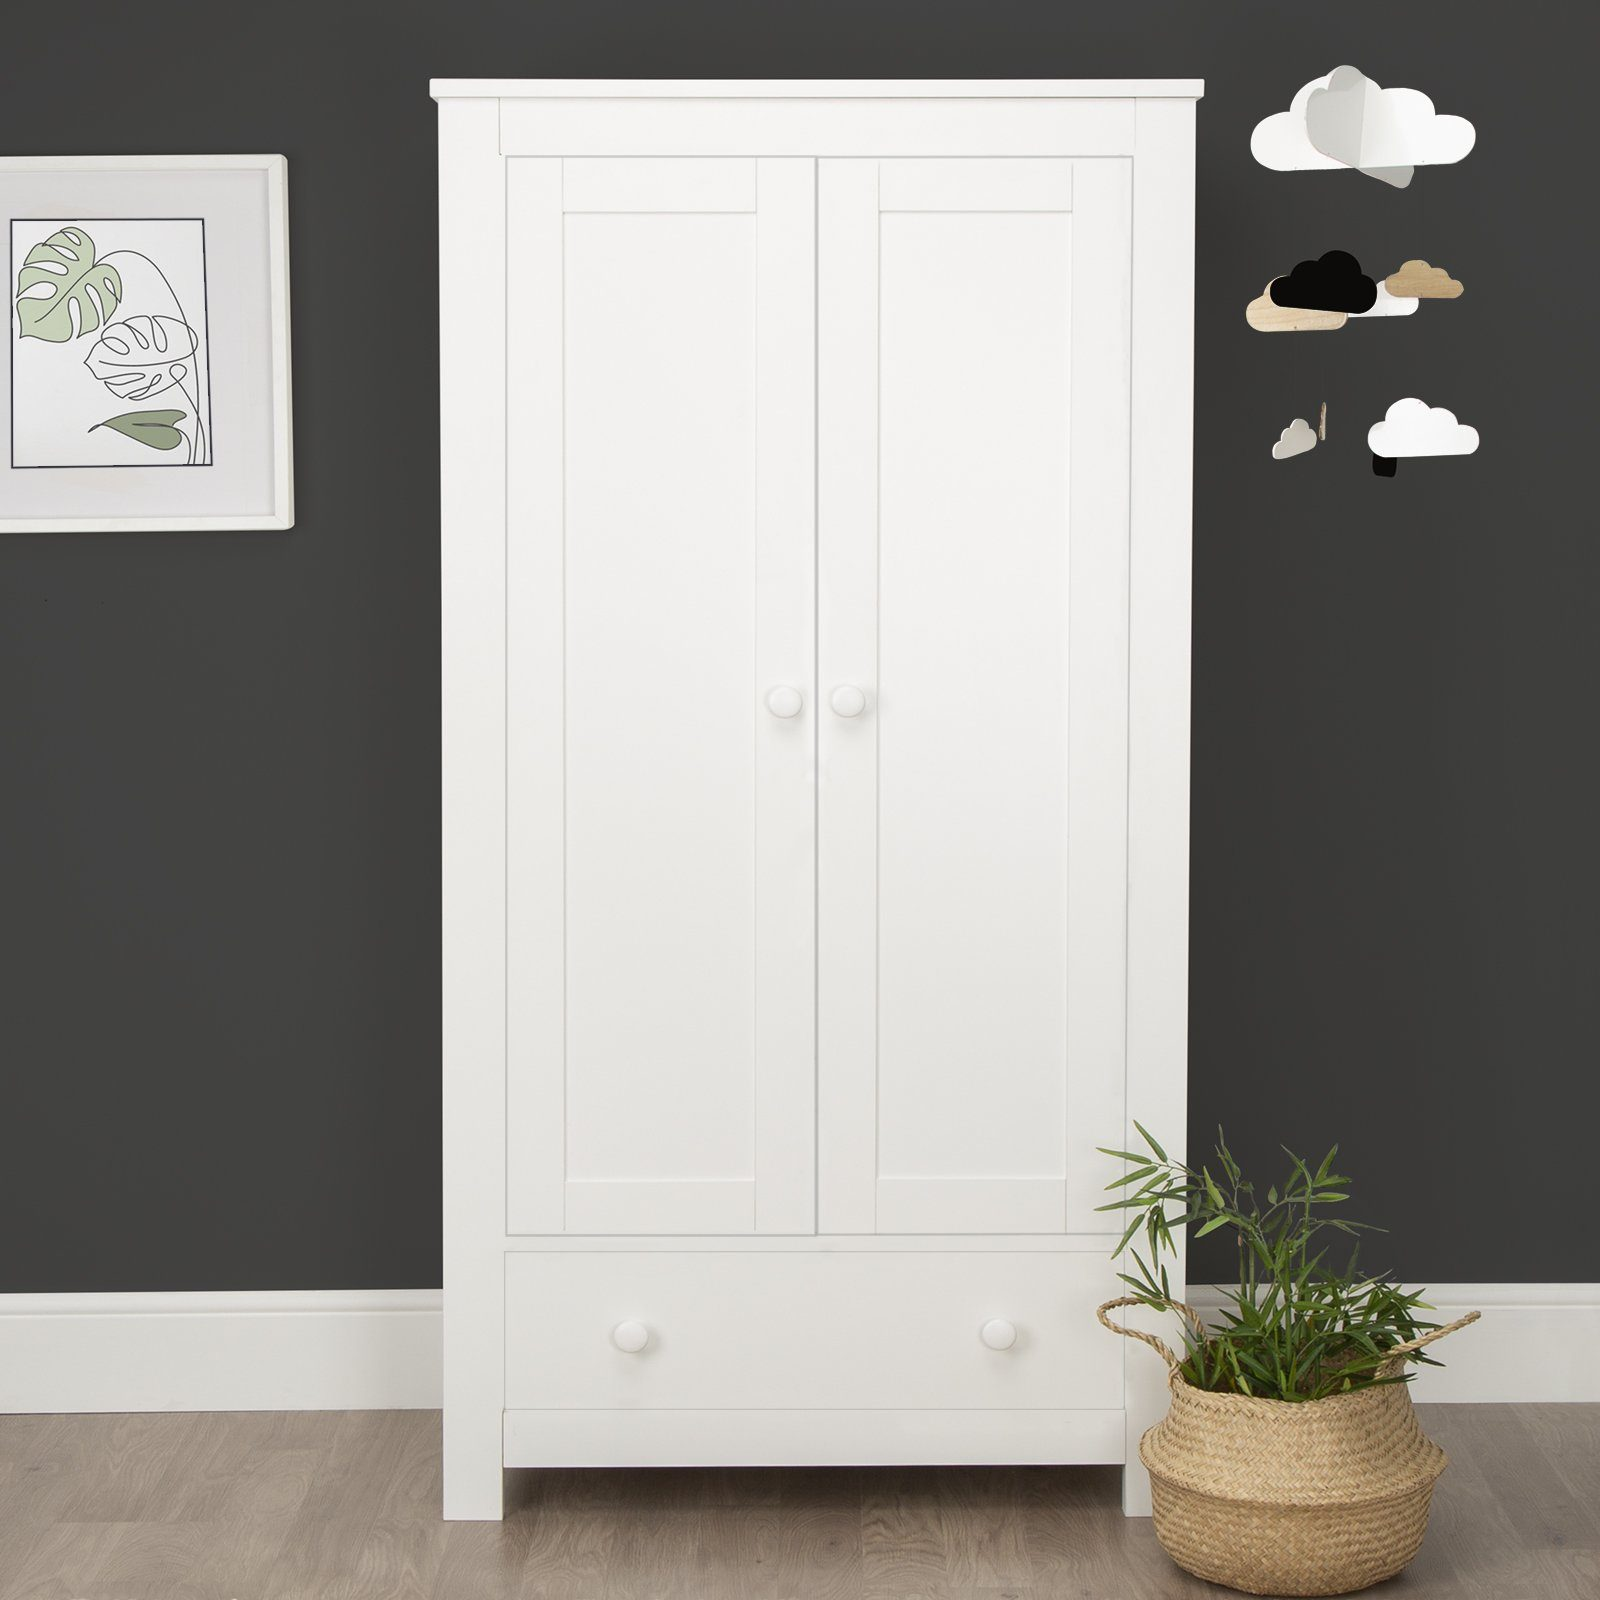 Aylesbury 3pc set - 3 drawer dresser & Changer , Cot bed and 2 Door double wardrobe - White Furniture CuddleCo